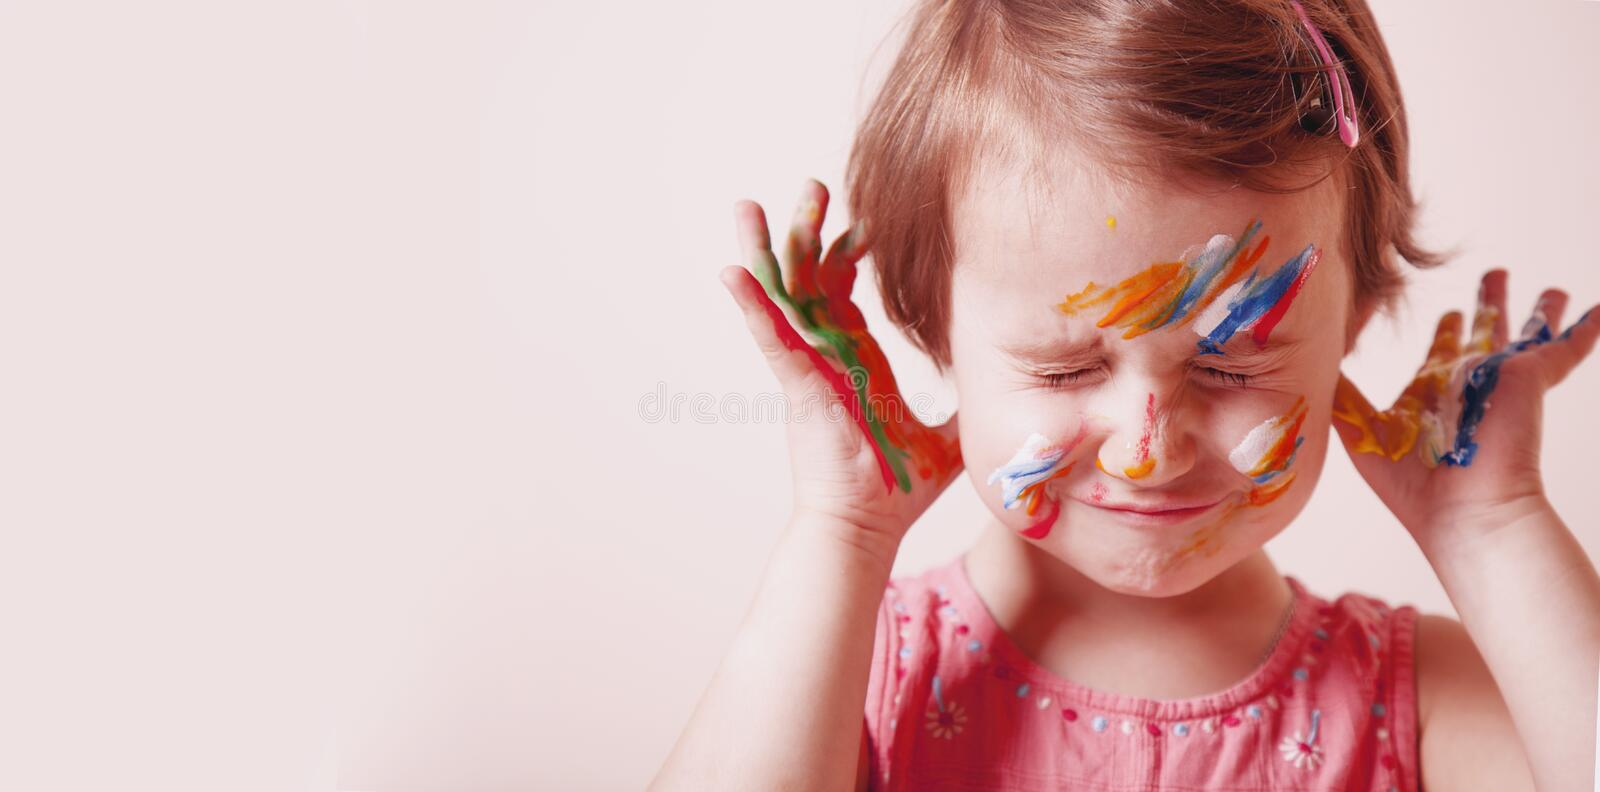 Art, creative and happiness childhood concept. Colorful painted hands and face in a beautiful little child girl royalty free stock photography